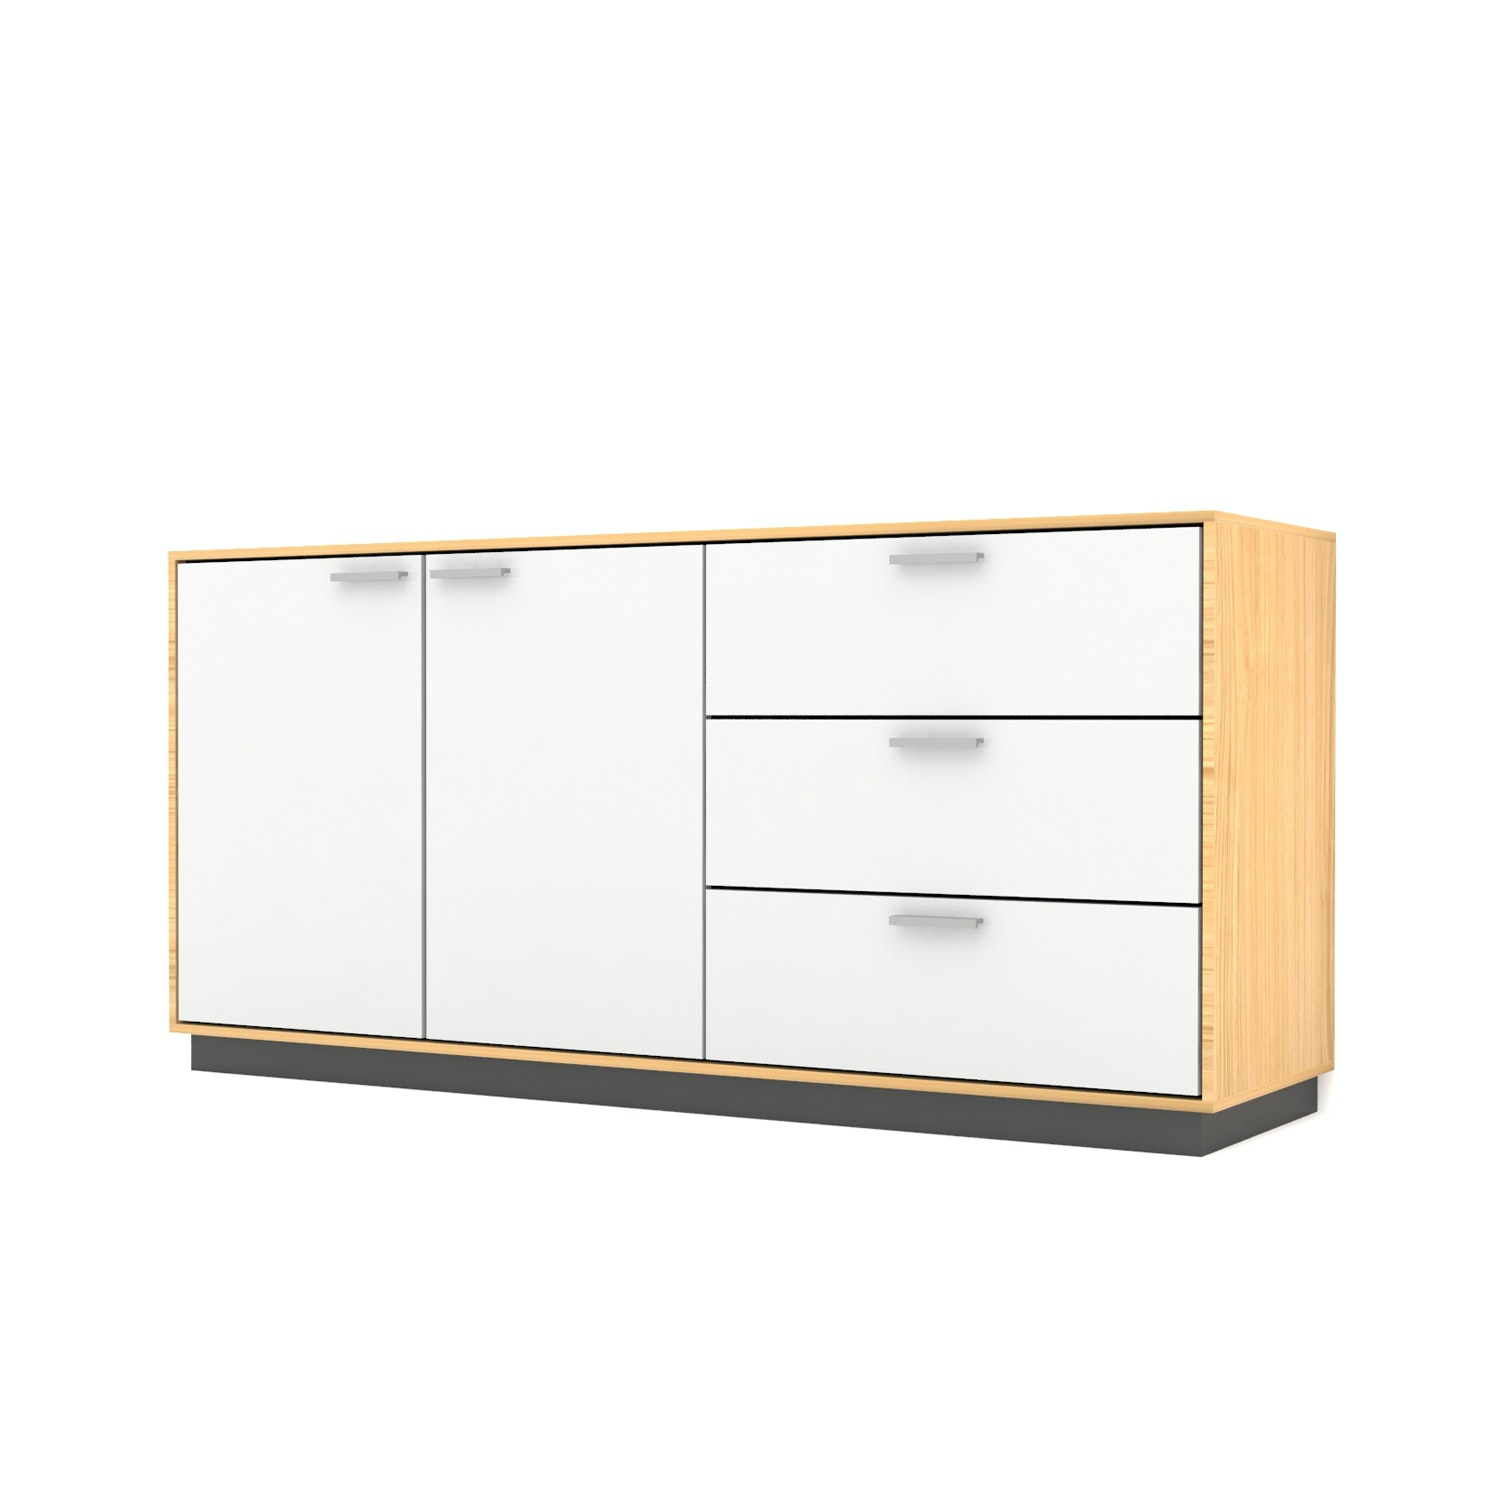 Case Furniture Cabinet Set PCI008-04-00 Desert Oak - White